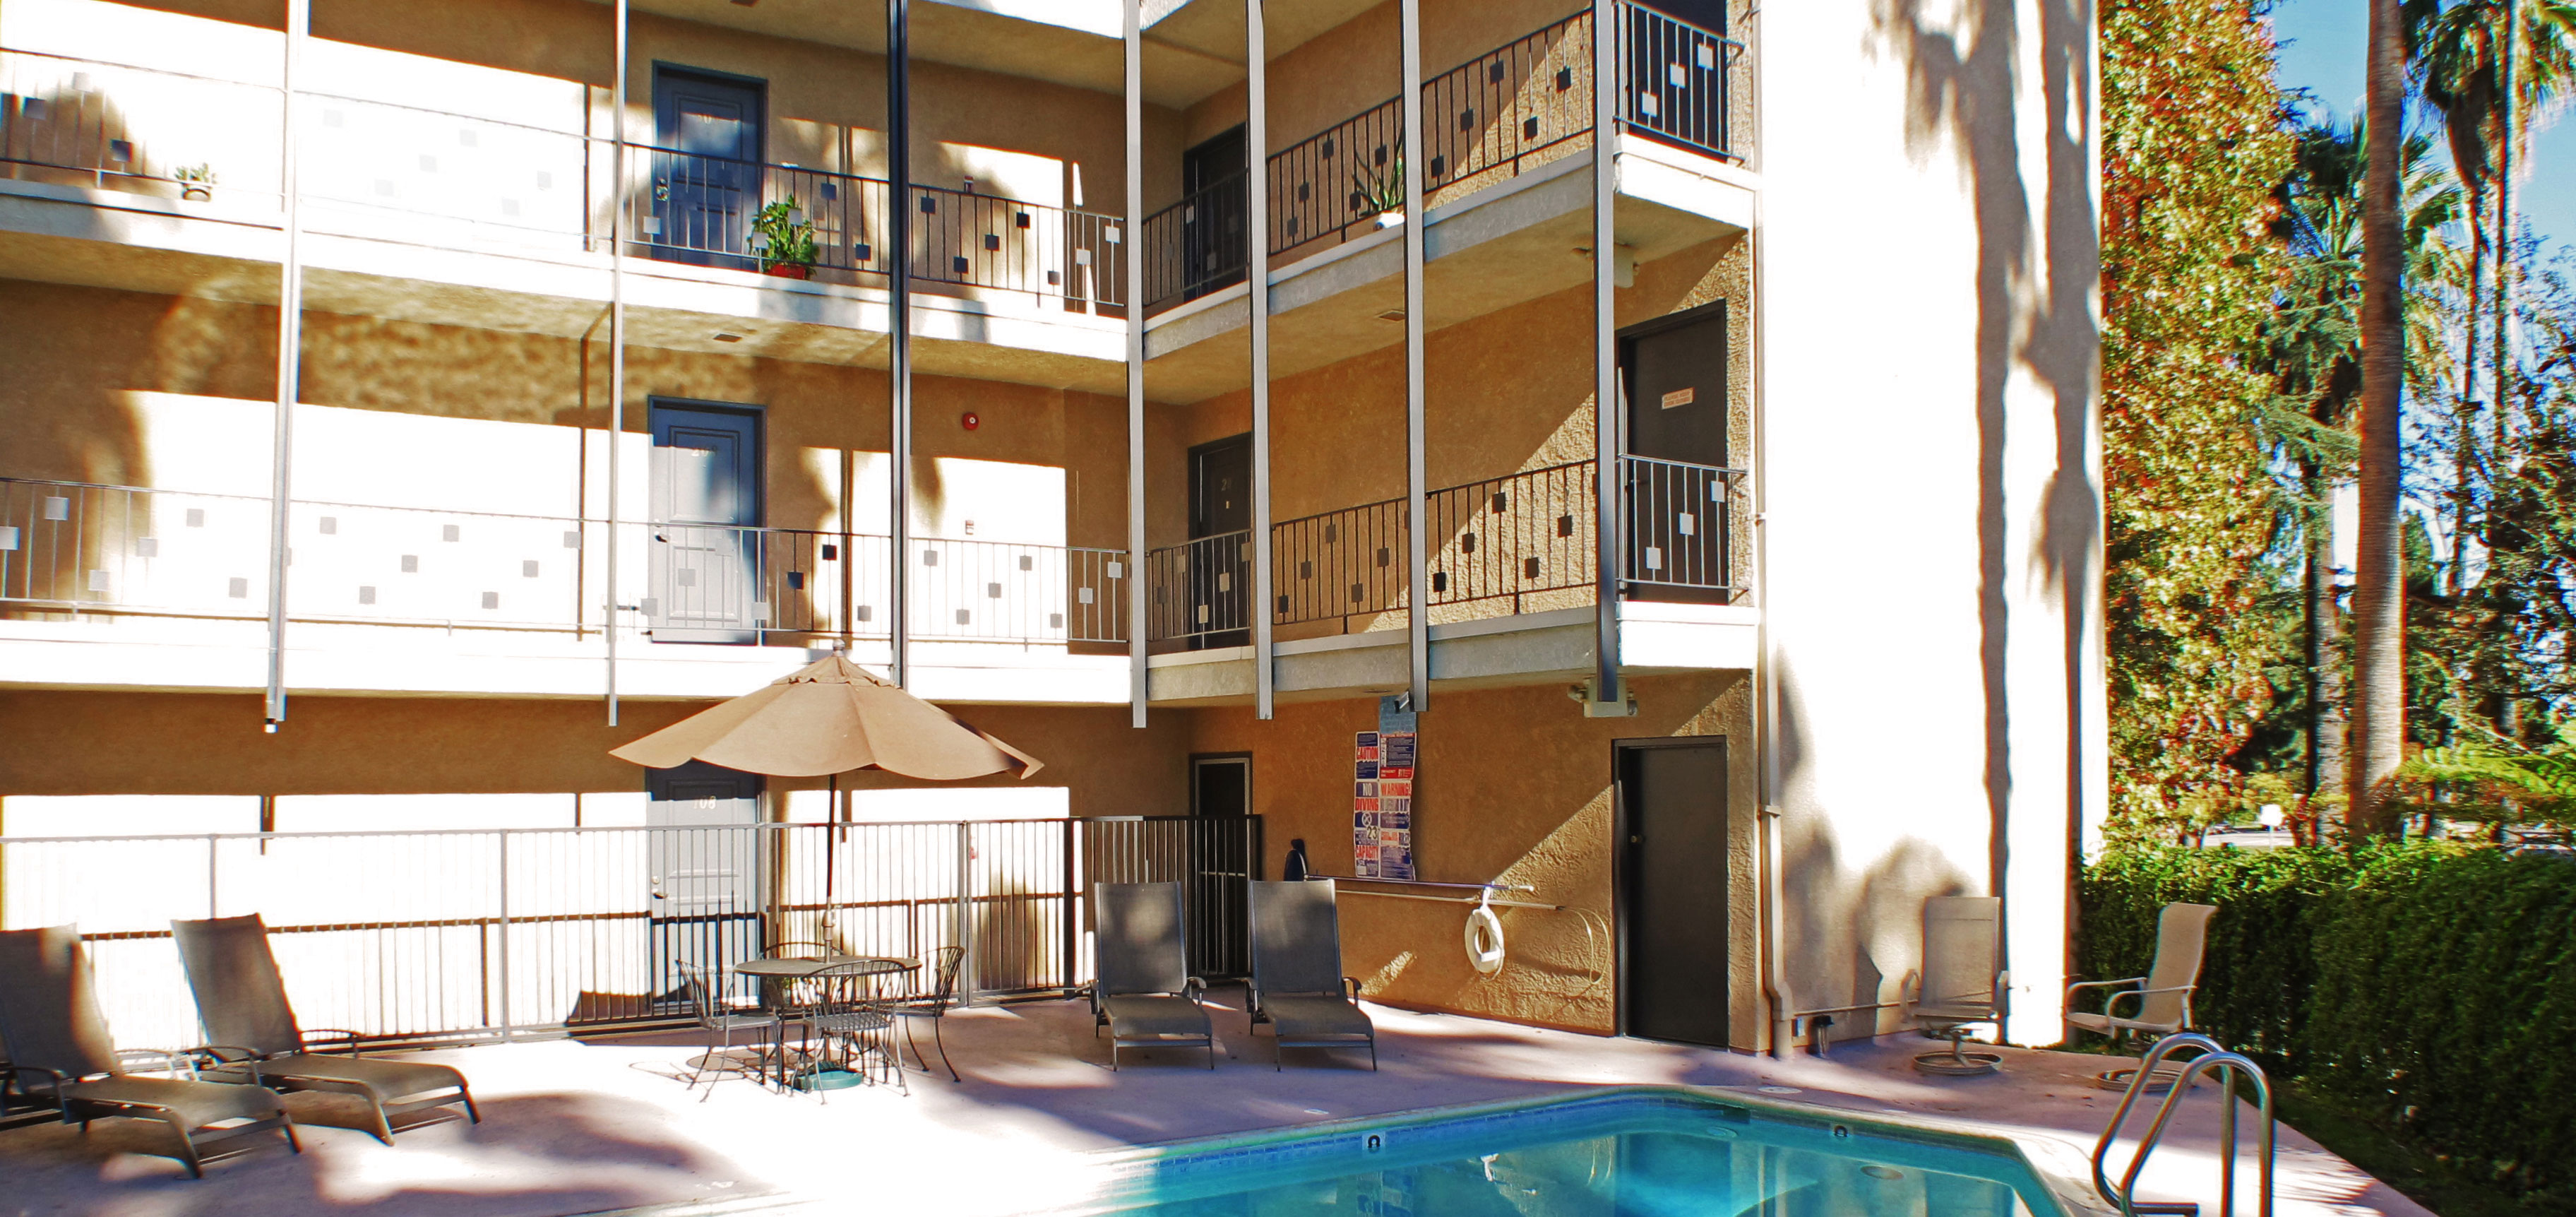 San Fernando Valley Apartment Homes - Berglas & Garfield